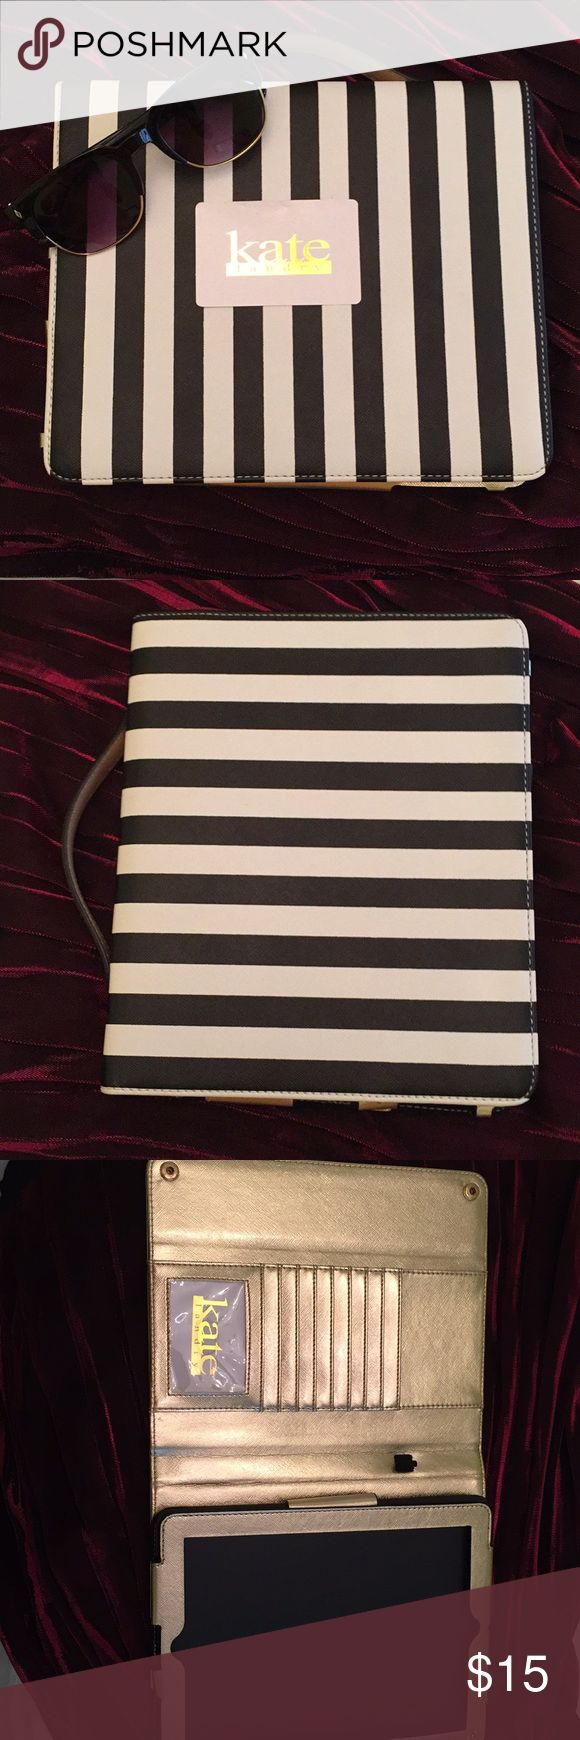 Kate Landry Striped Ipad Case This cute IPad case is both practical and stylish!  It can hold cards and can be carried around by a strap. Holds and Ipad air and can even hold the ipad up into an easel type thing so you can watch movies. Make me a offer!! Kate Landry Accessories Tablet Cases